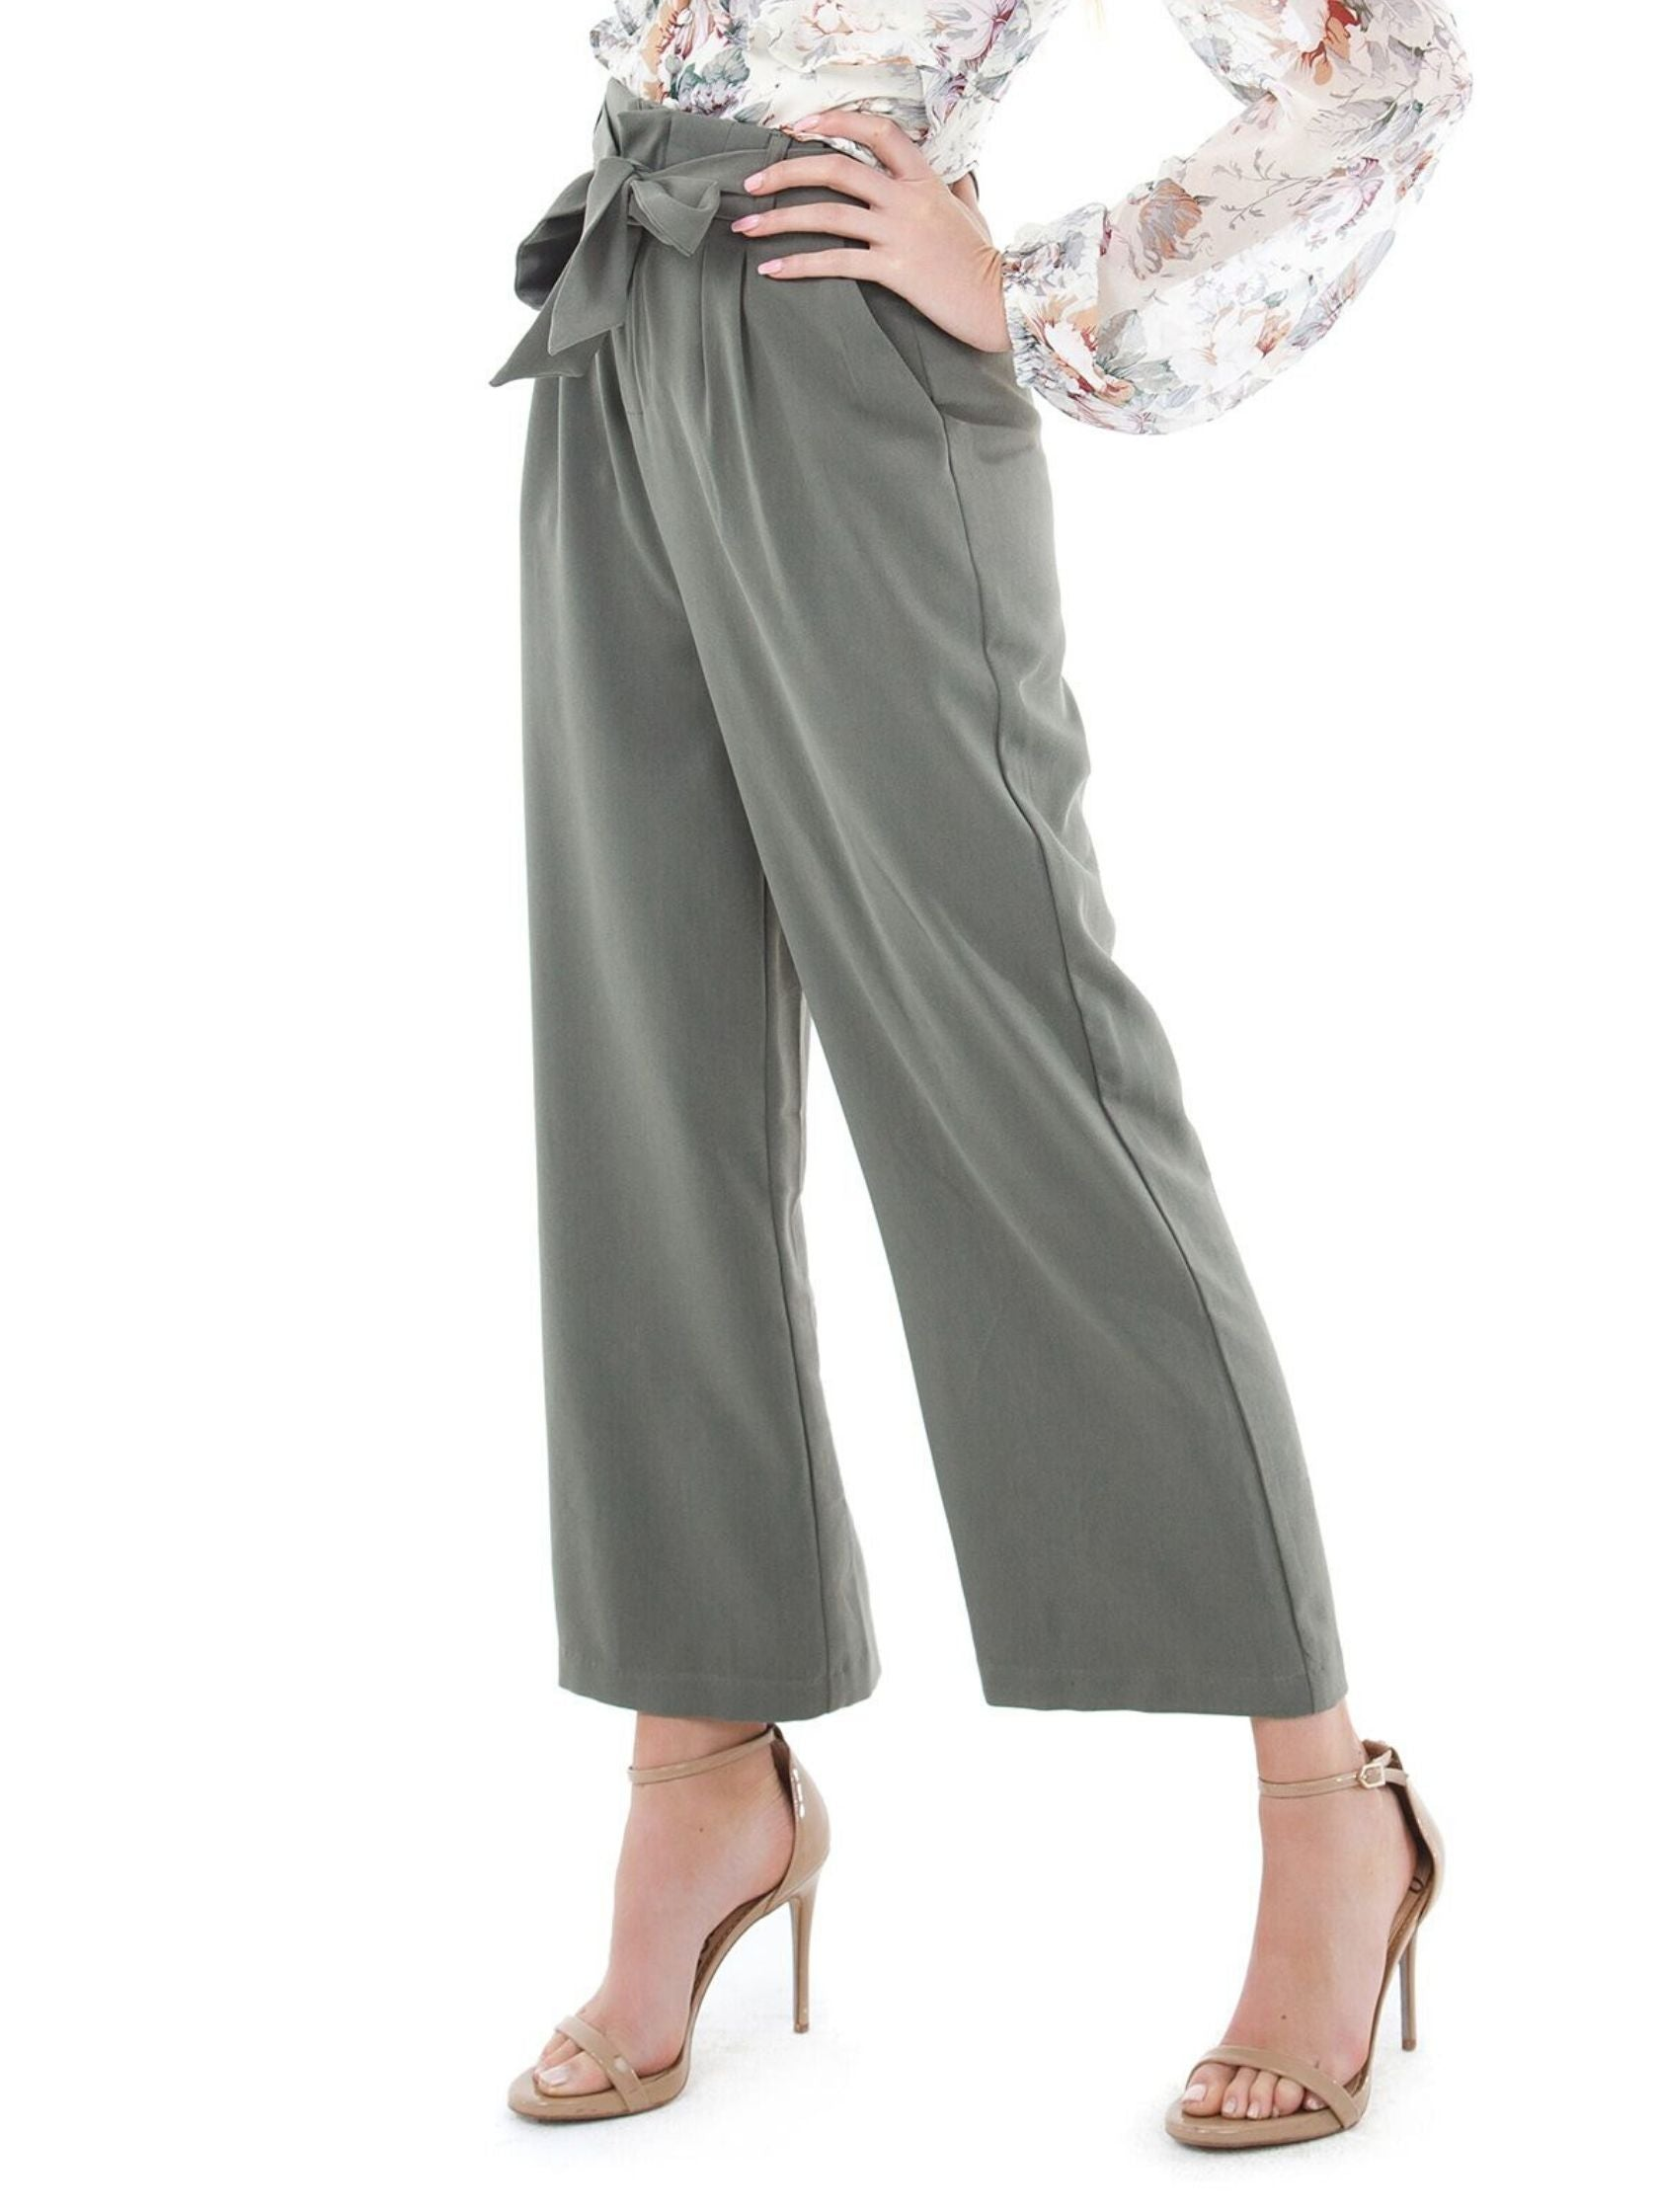 Women wearing a pants rental from BB Dakota called Go With The Flow Cropped Pant